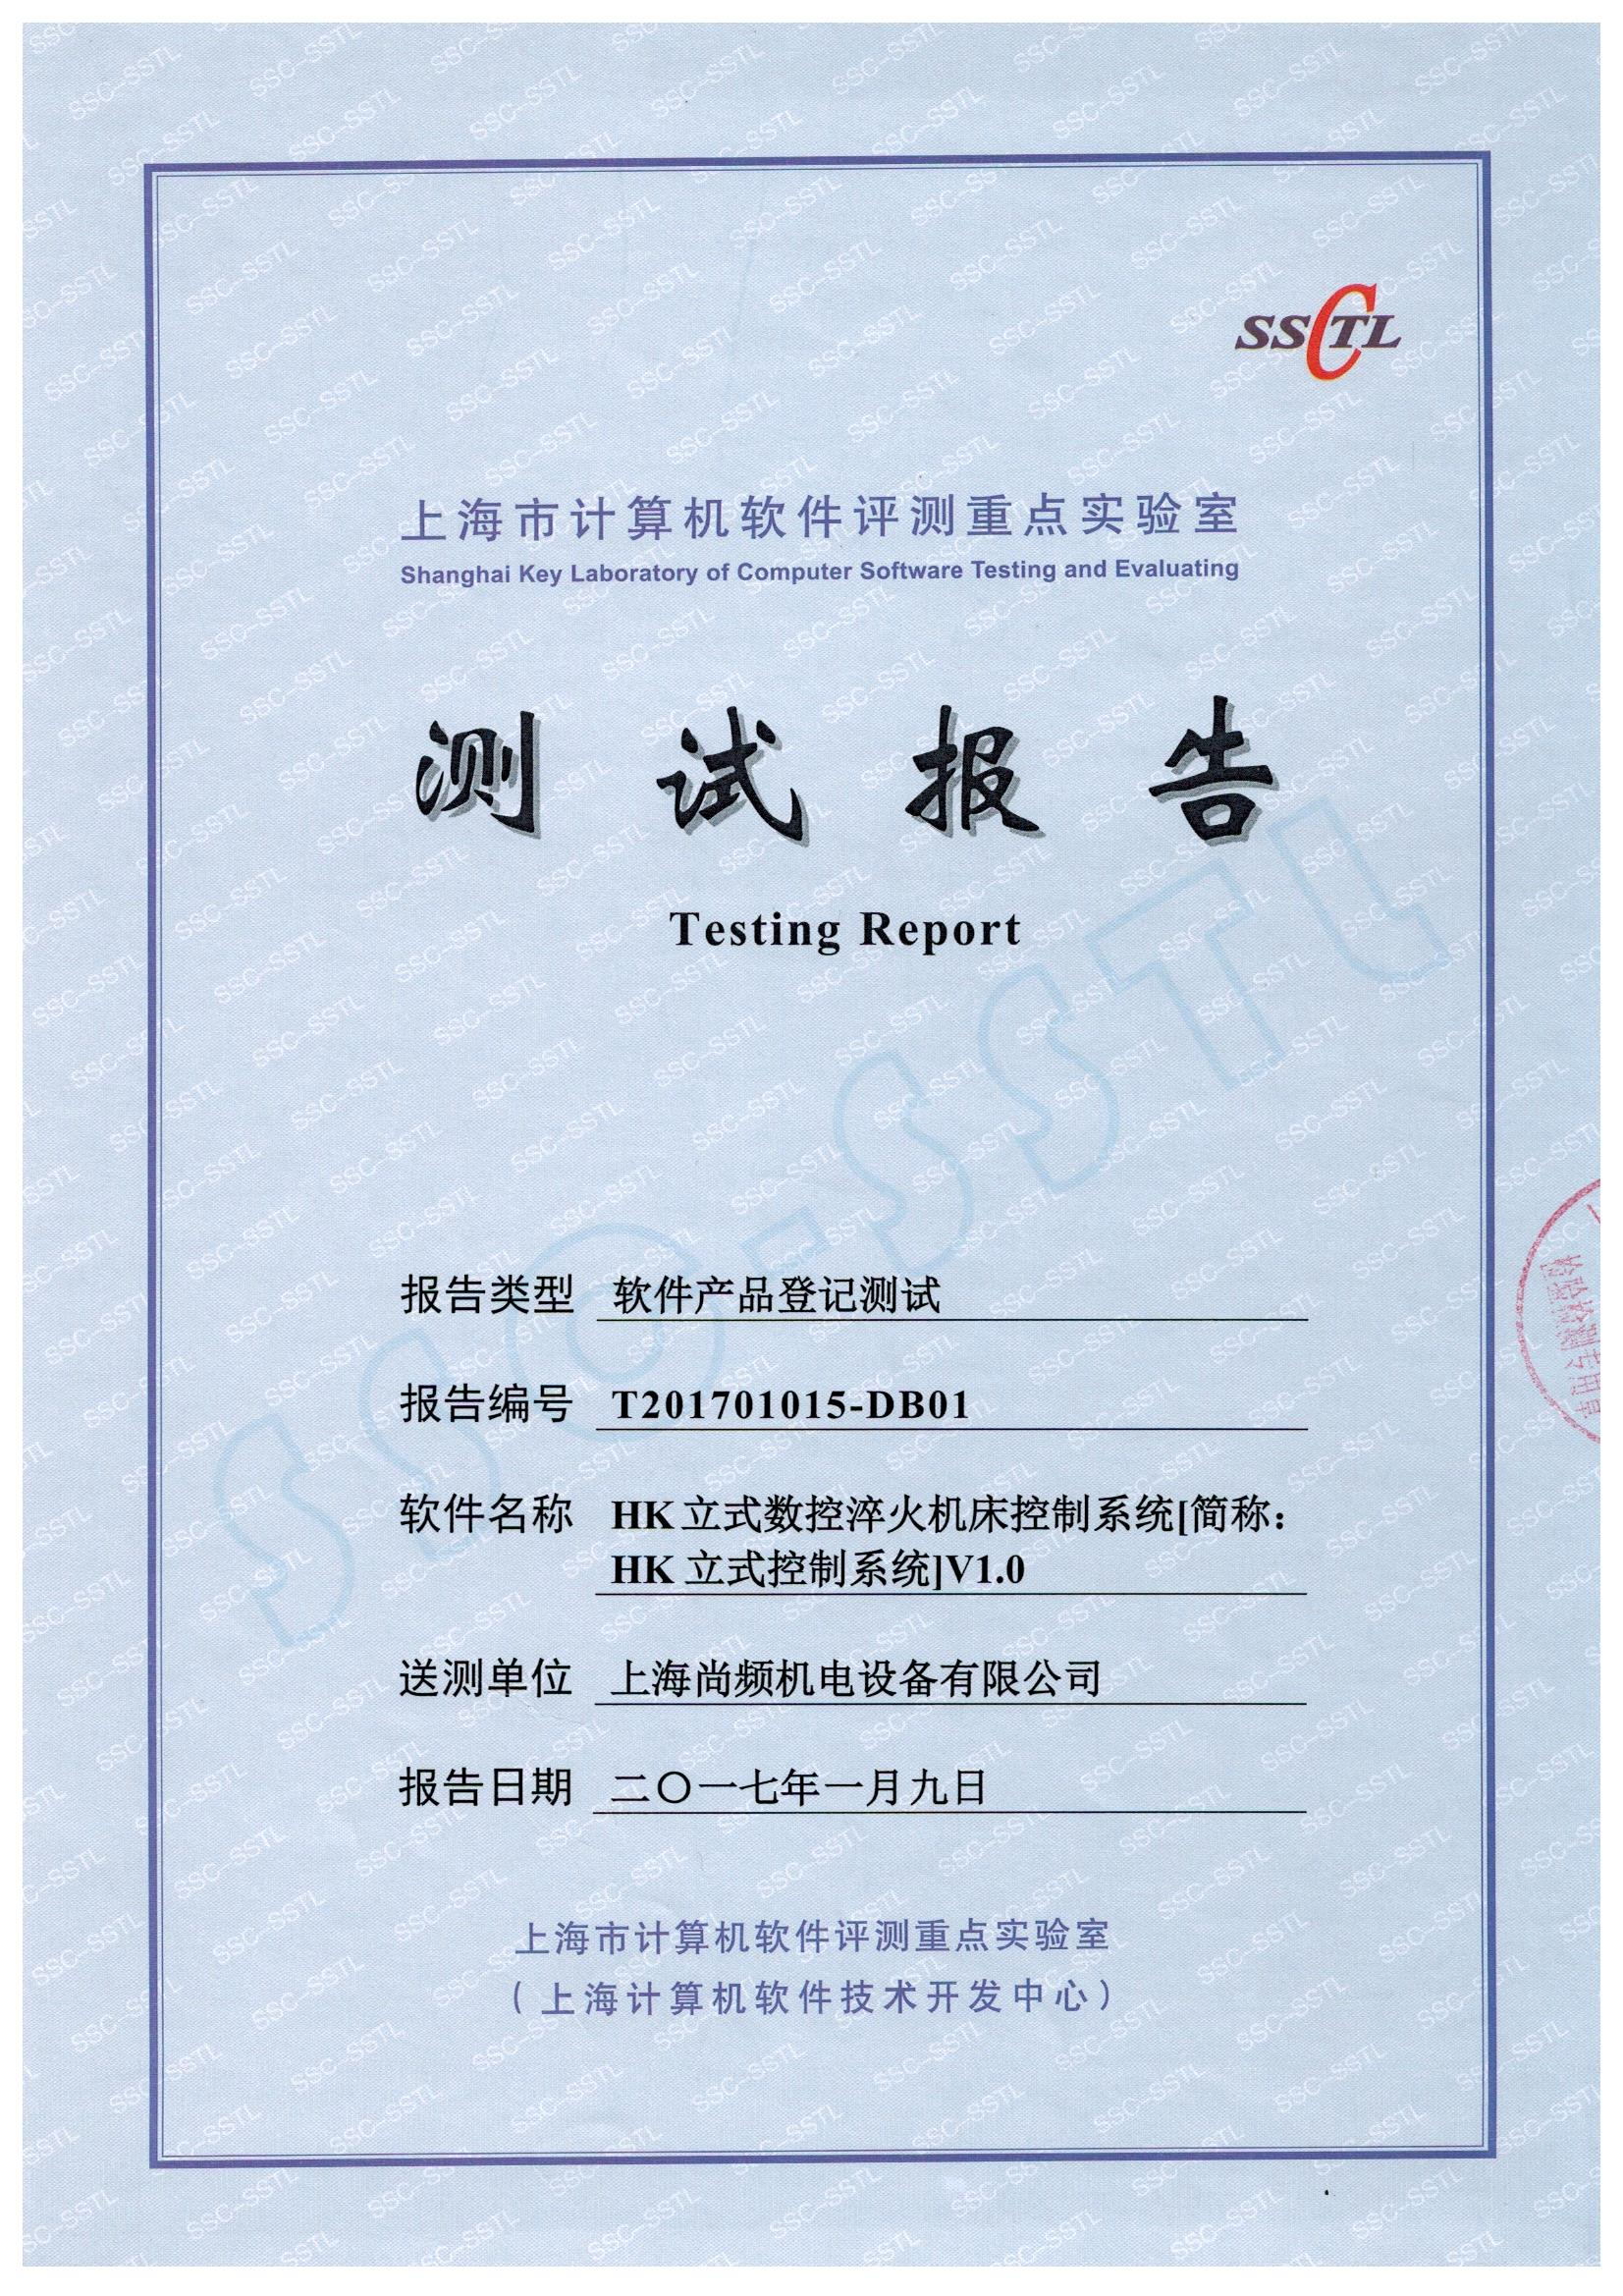 Induction Hardening Machine Control System Test Reports